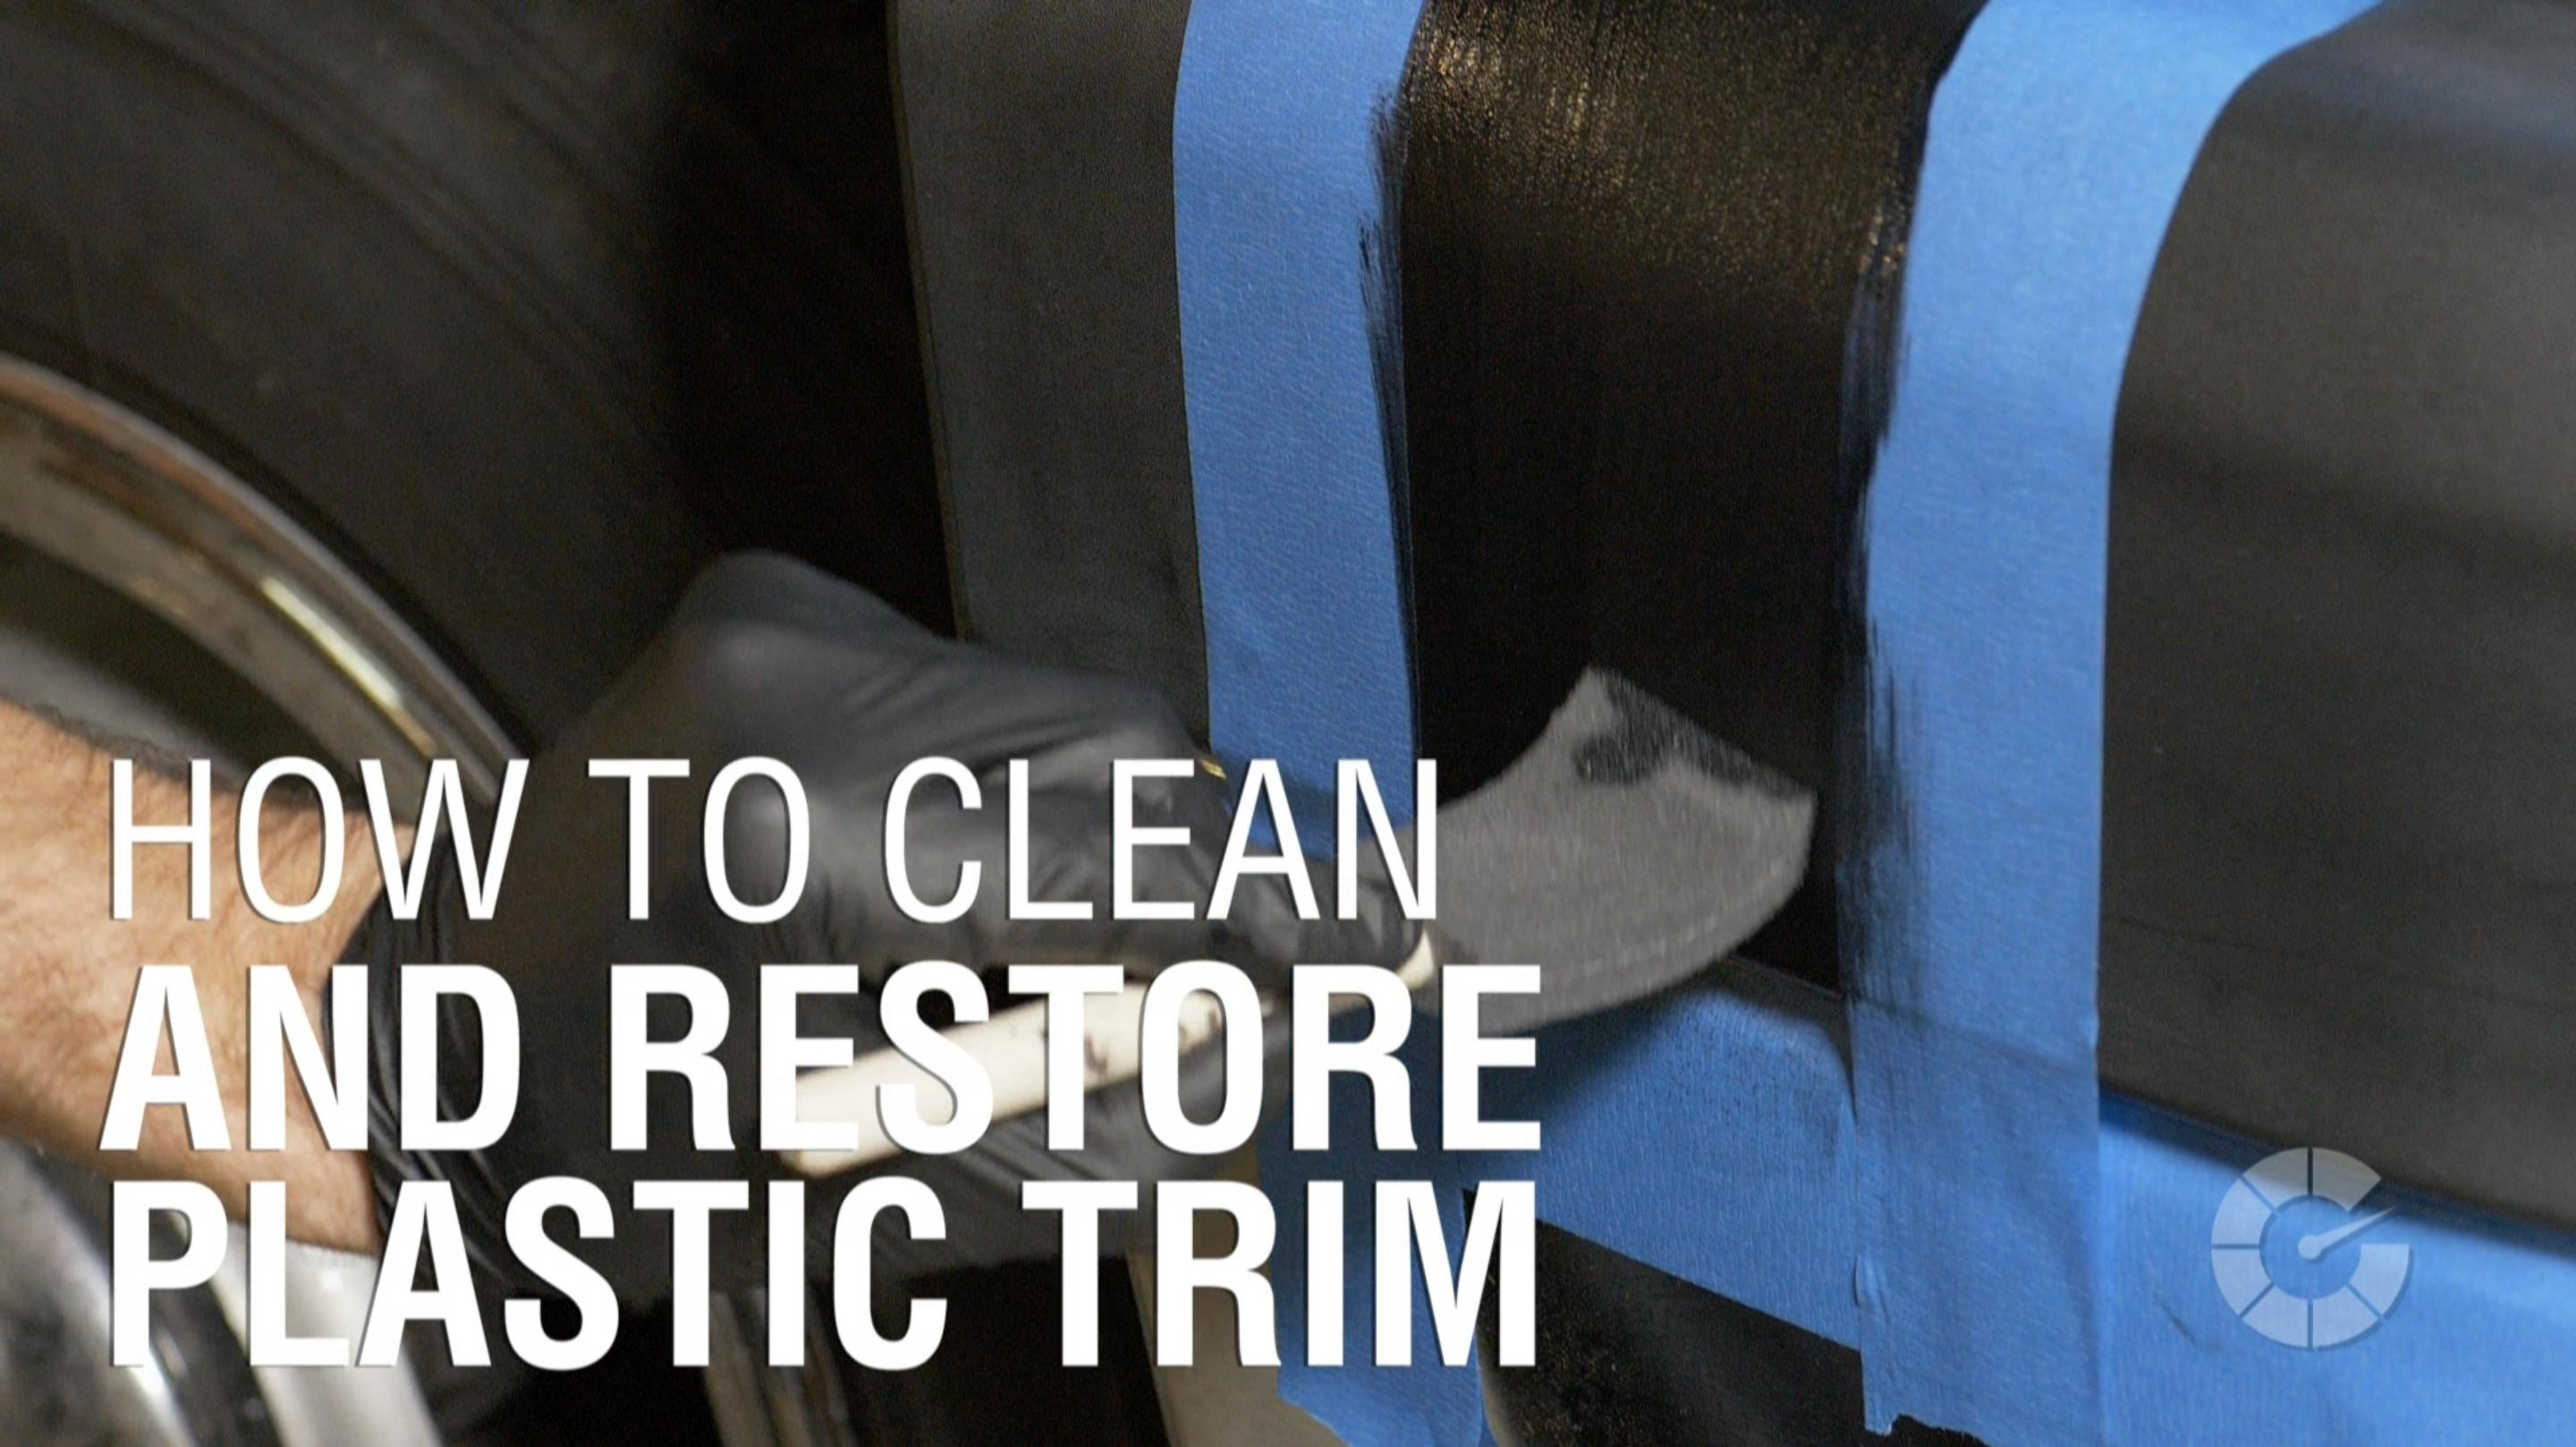 How to clean and restore plastic trim